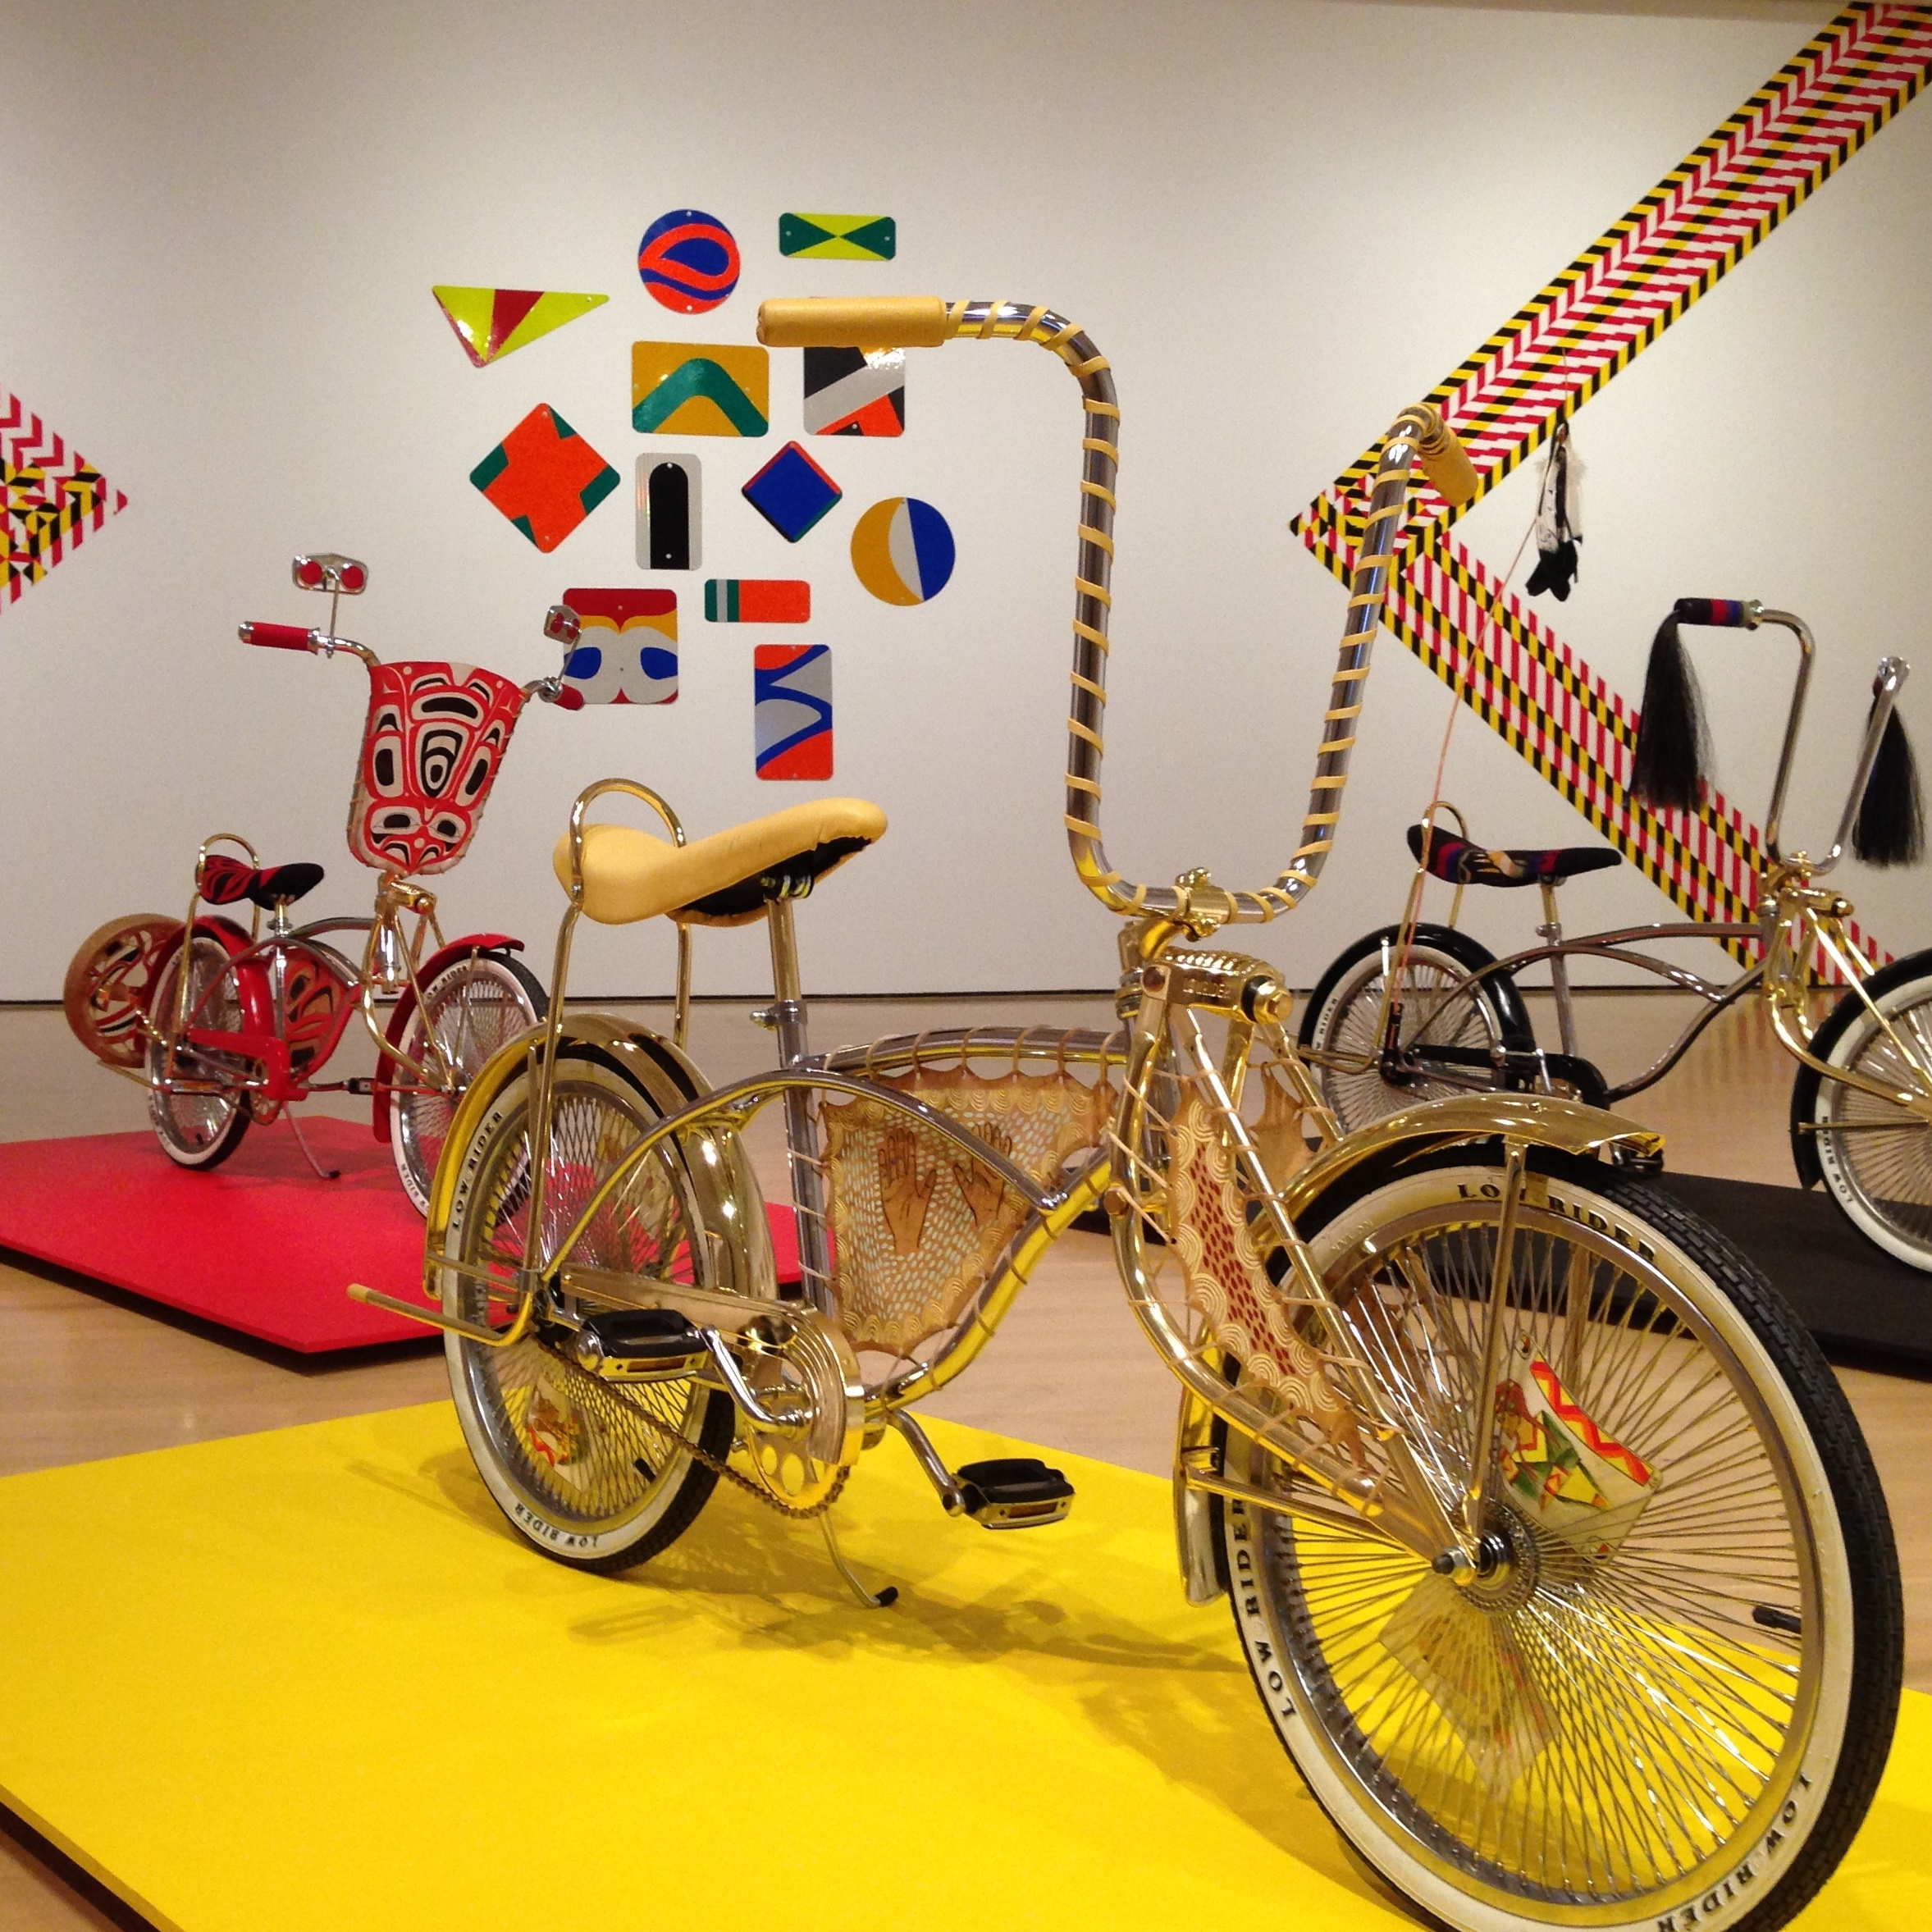 Artist Dylan Miner worked with indigenous youth to make low-rider bicycles designed to demand attention, just as Canada's indigenous communities have been doing recently.